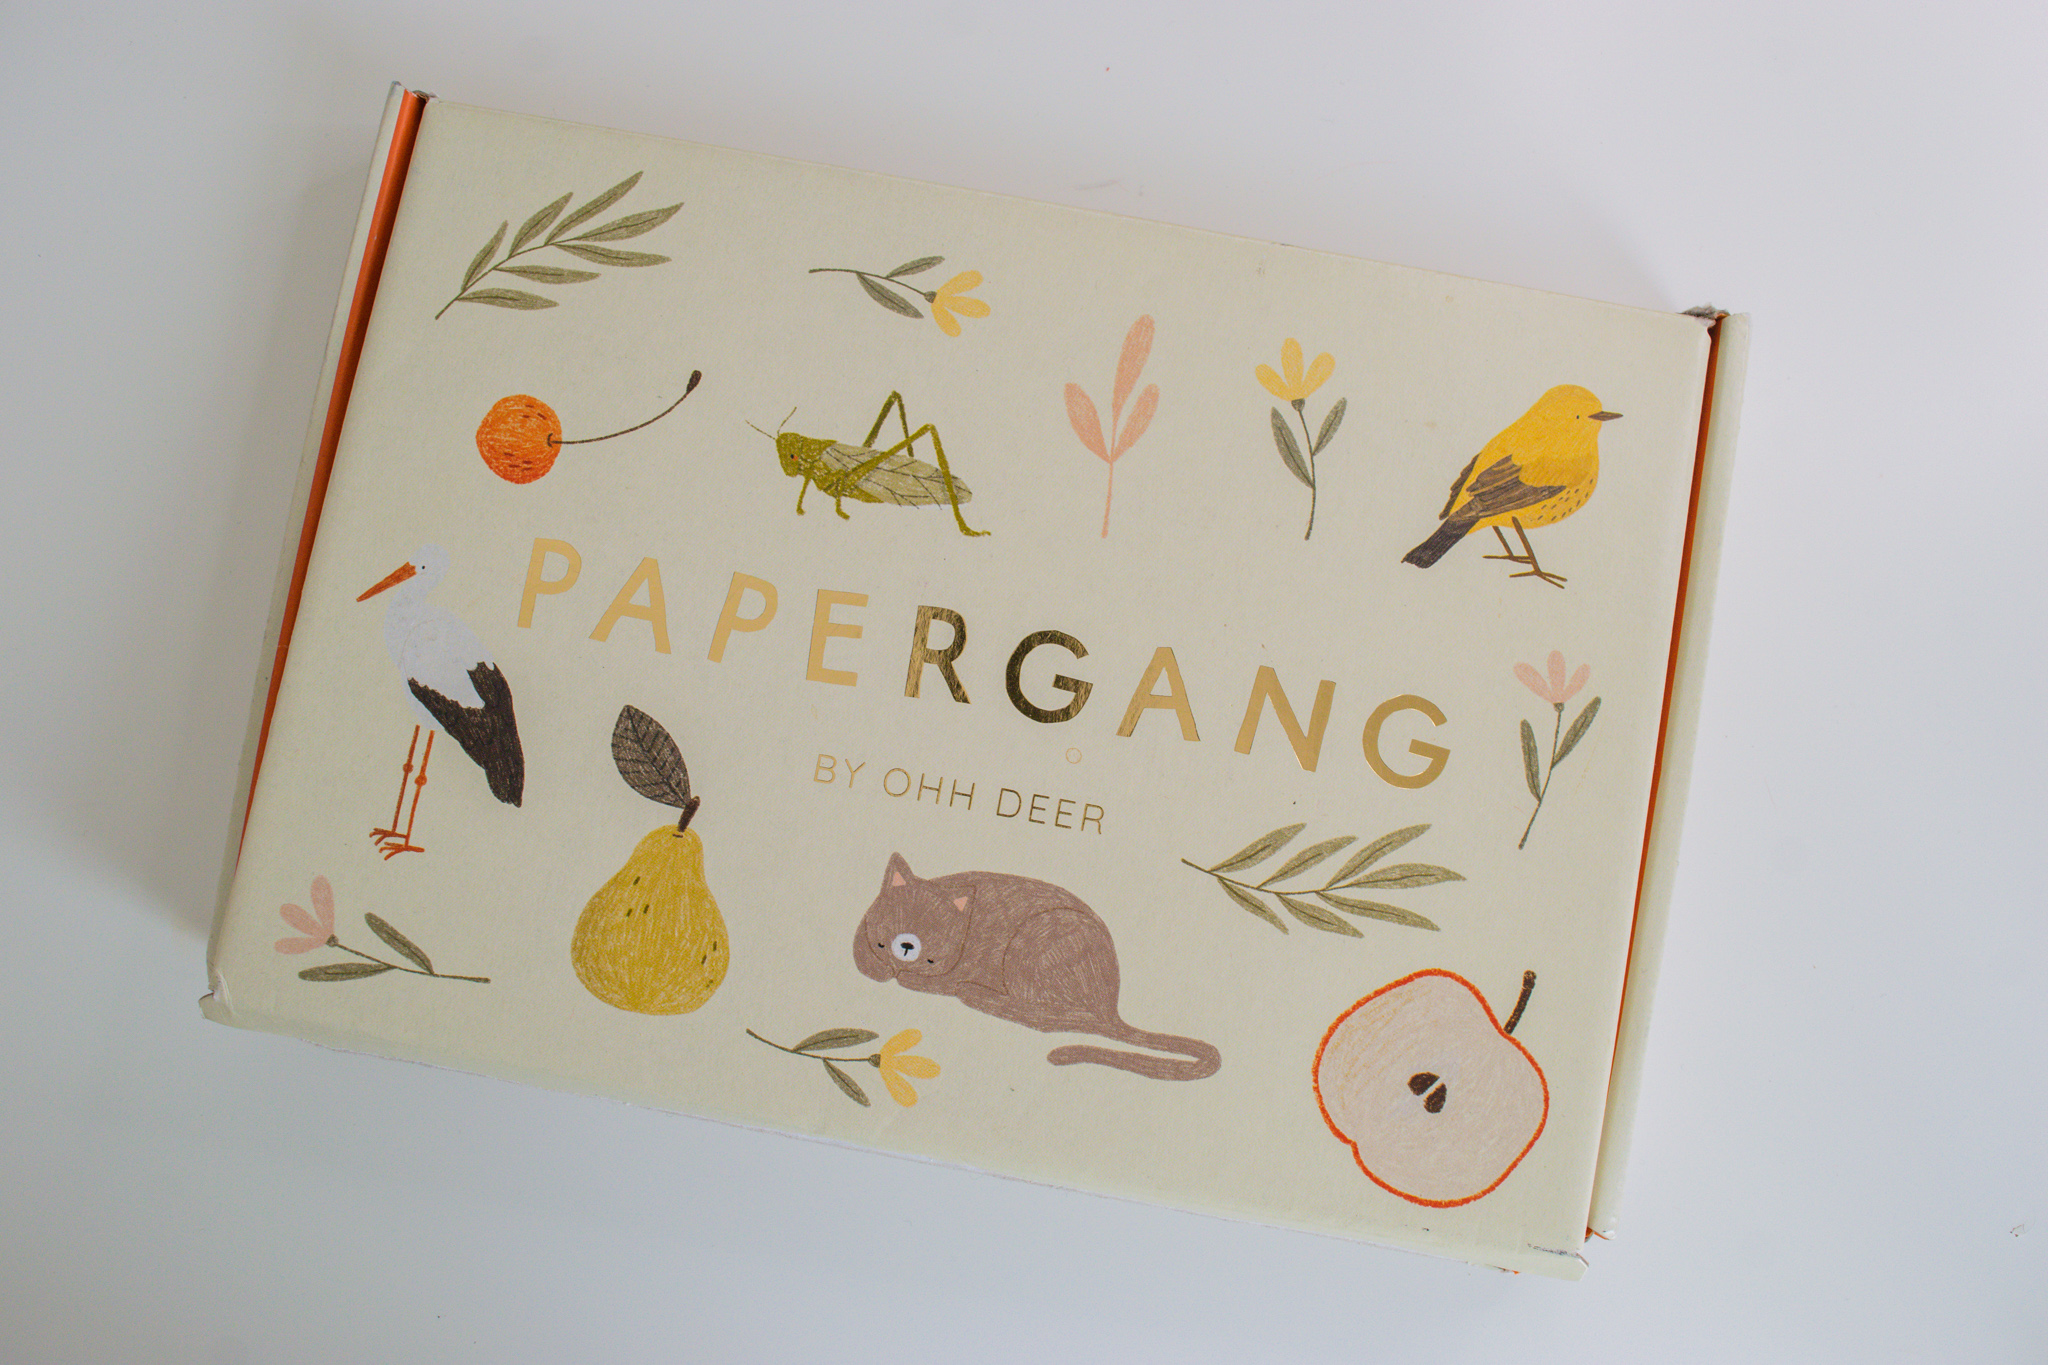 Papergang box packaging with animals and plants